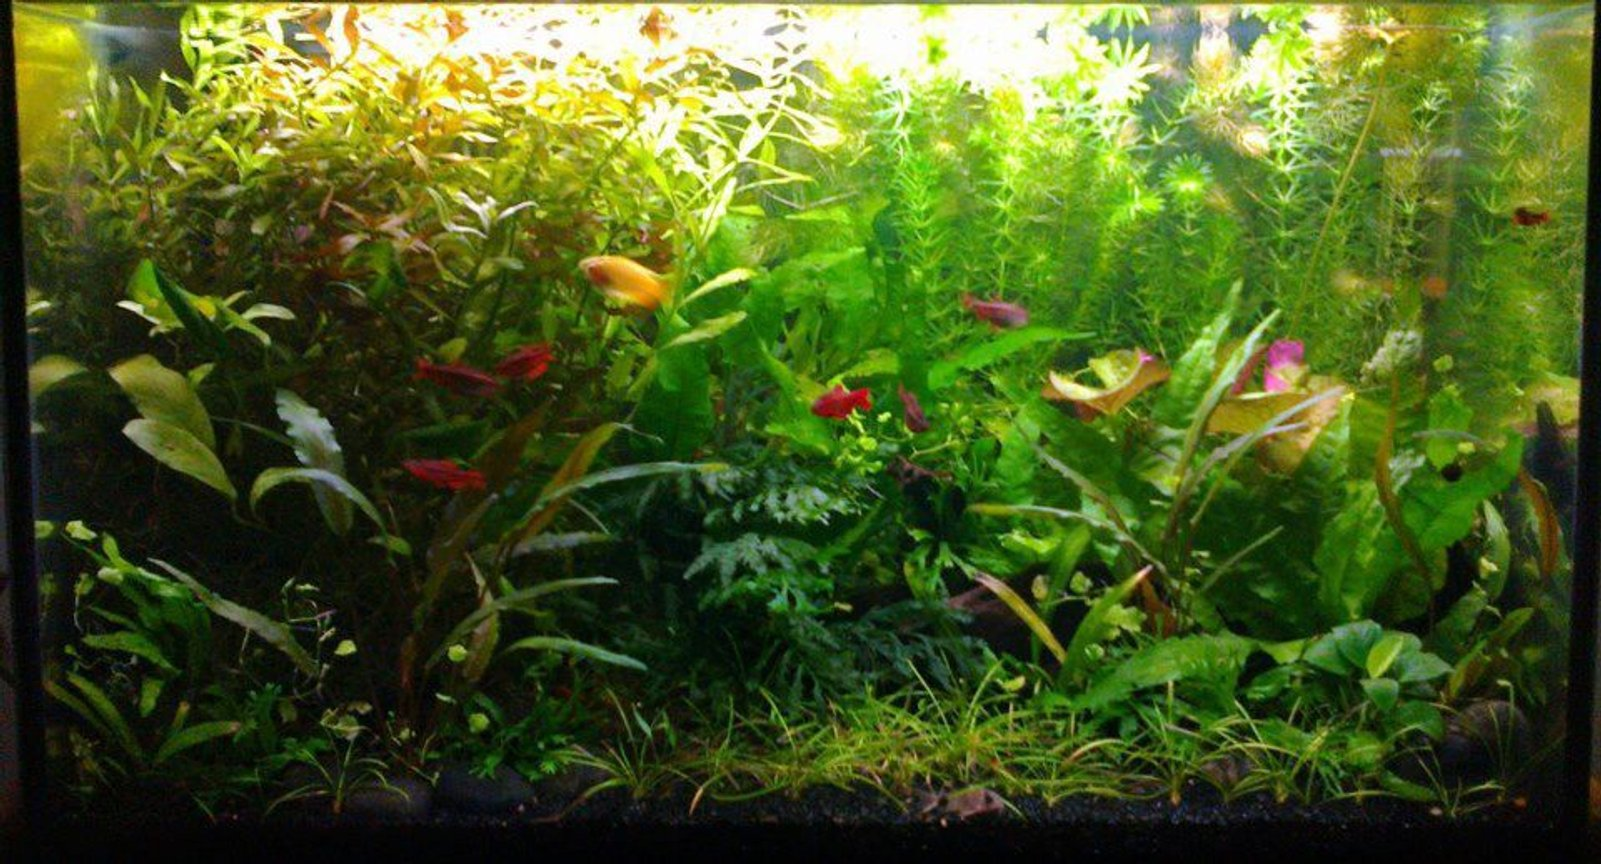 15 gallons planted tank (mostly live plants and fish) - Garden style. Easy plants, weekly 1/3 water change and pruning. Excel daily and liquid ferts every 2nd day. Honey gourami, 5 cherry barbs, 4 triliniatus corydoras (aka three-line or false julii cory). Also red cherry shrimp and a few ramshorn snails. Plant list see my profile :)